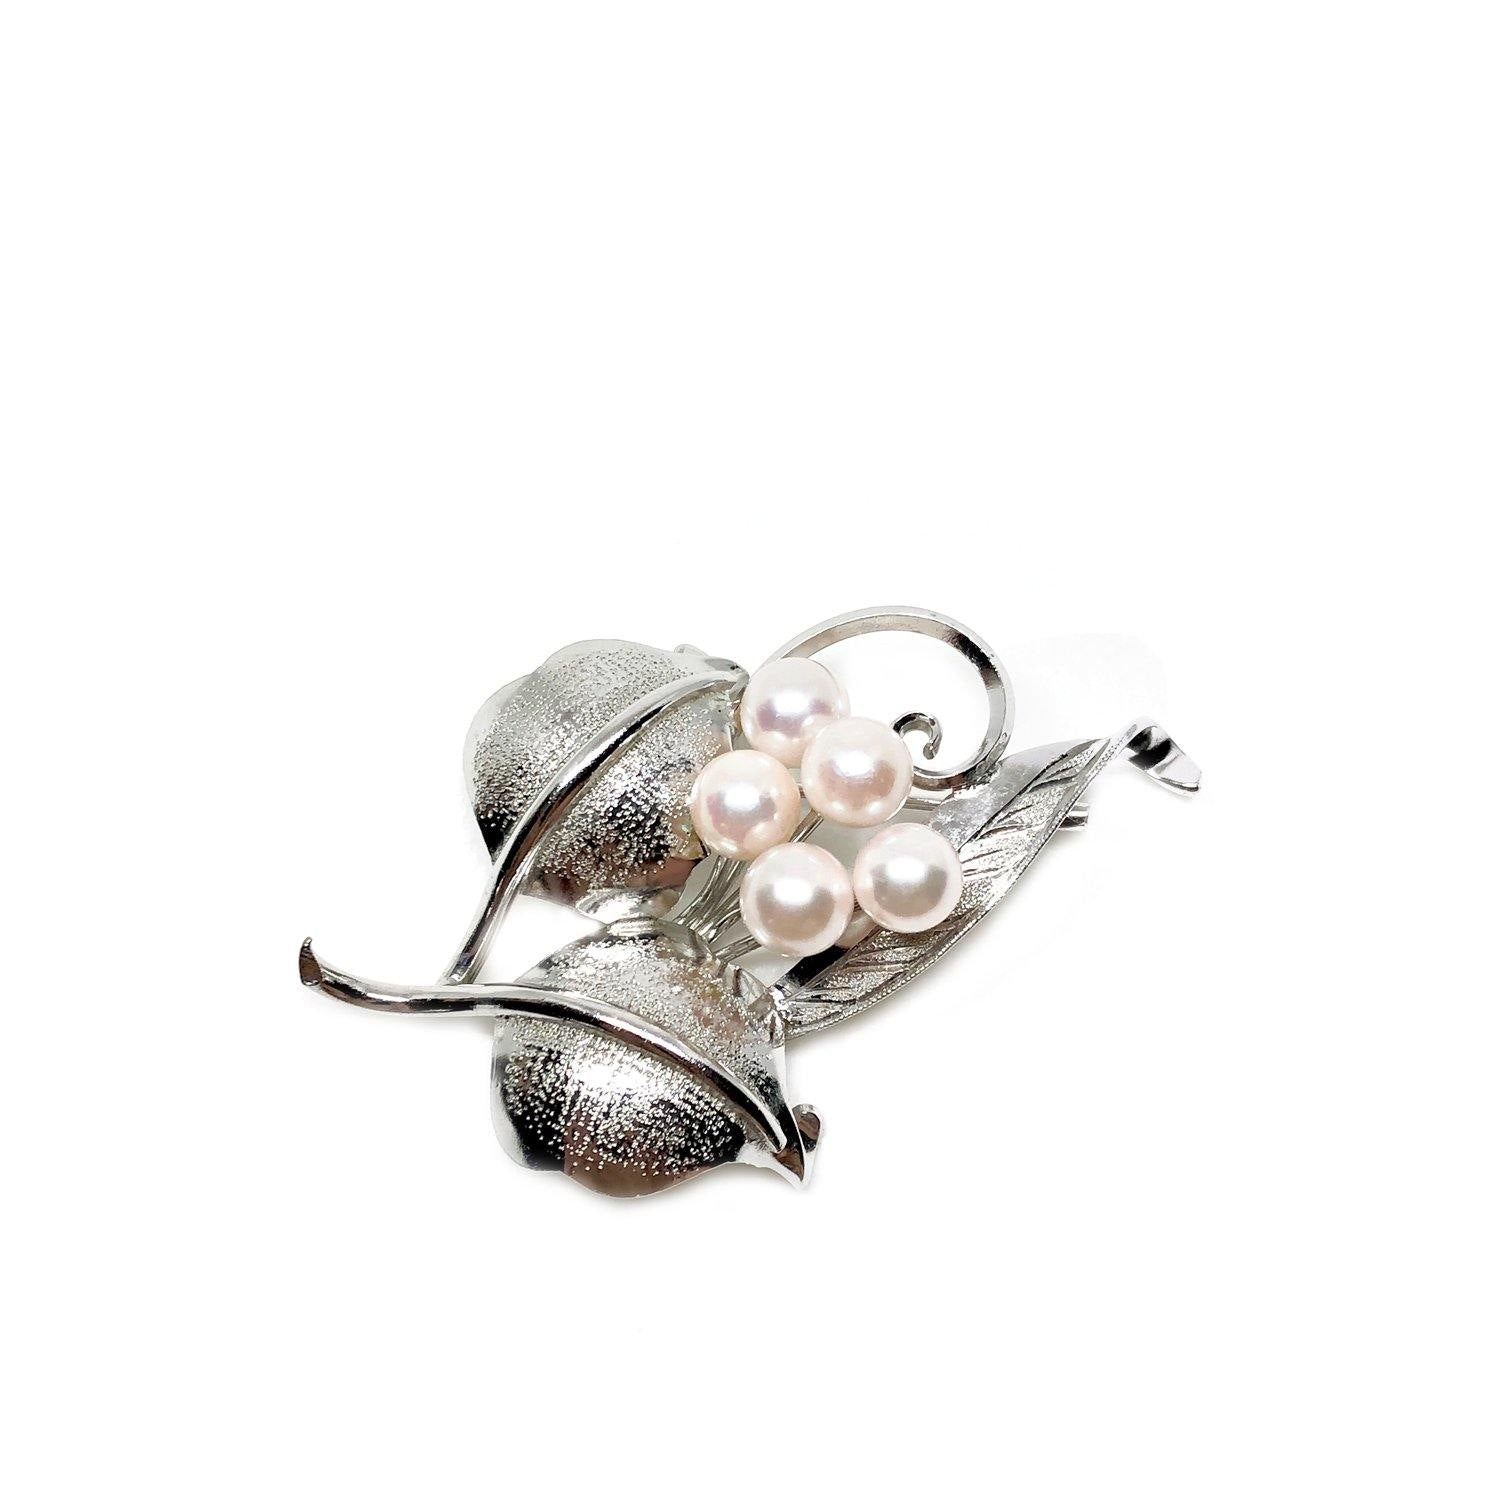 Textured Leaf Japanese Akoya Cultured Saltwater Pearl Brooch- Sterling Silver